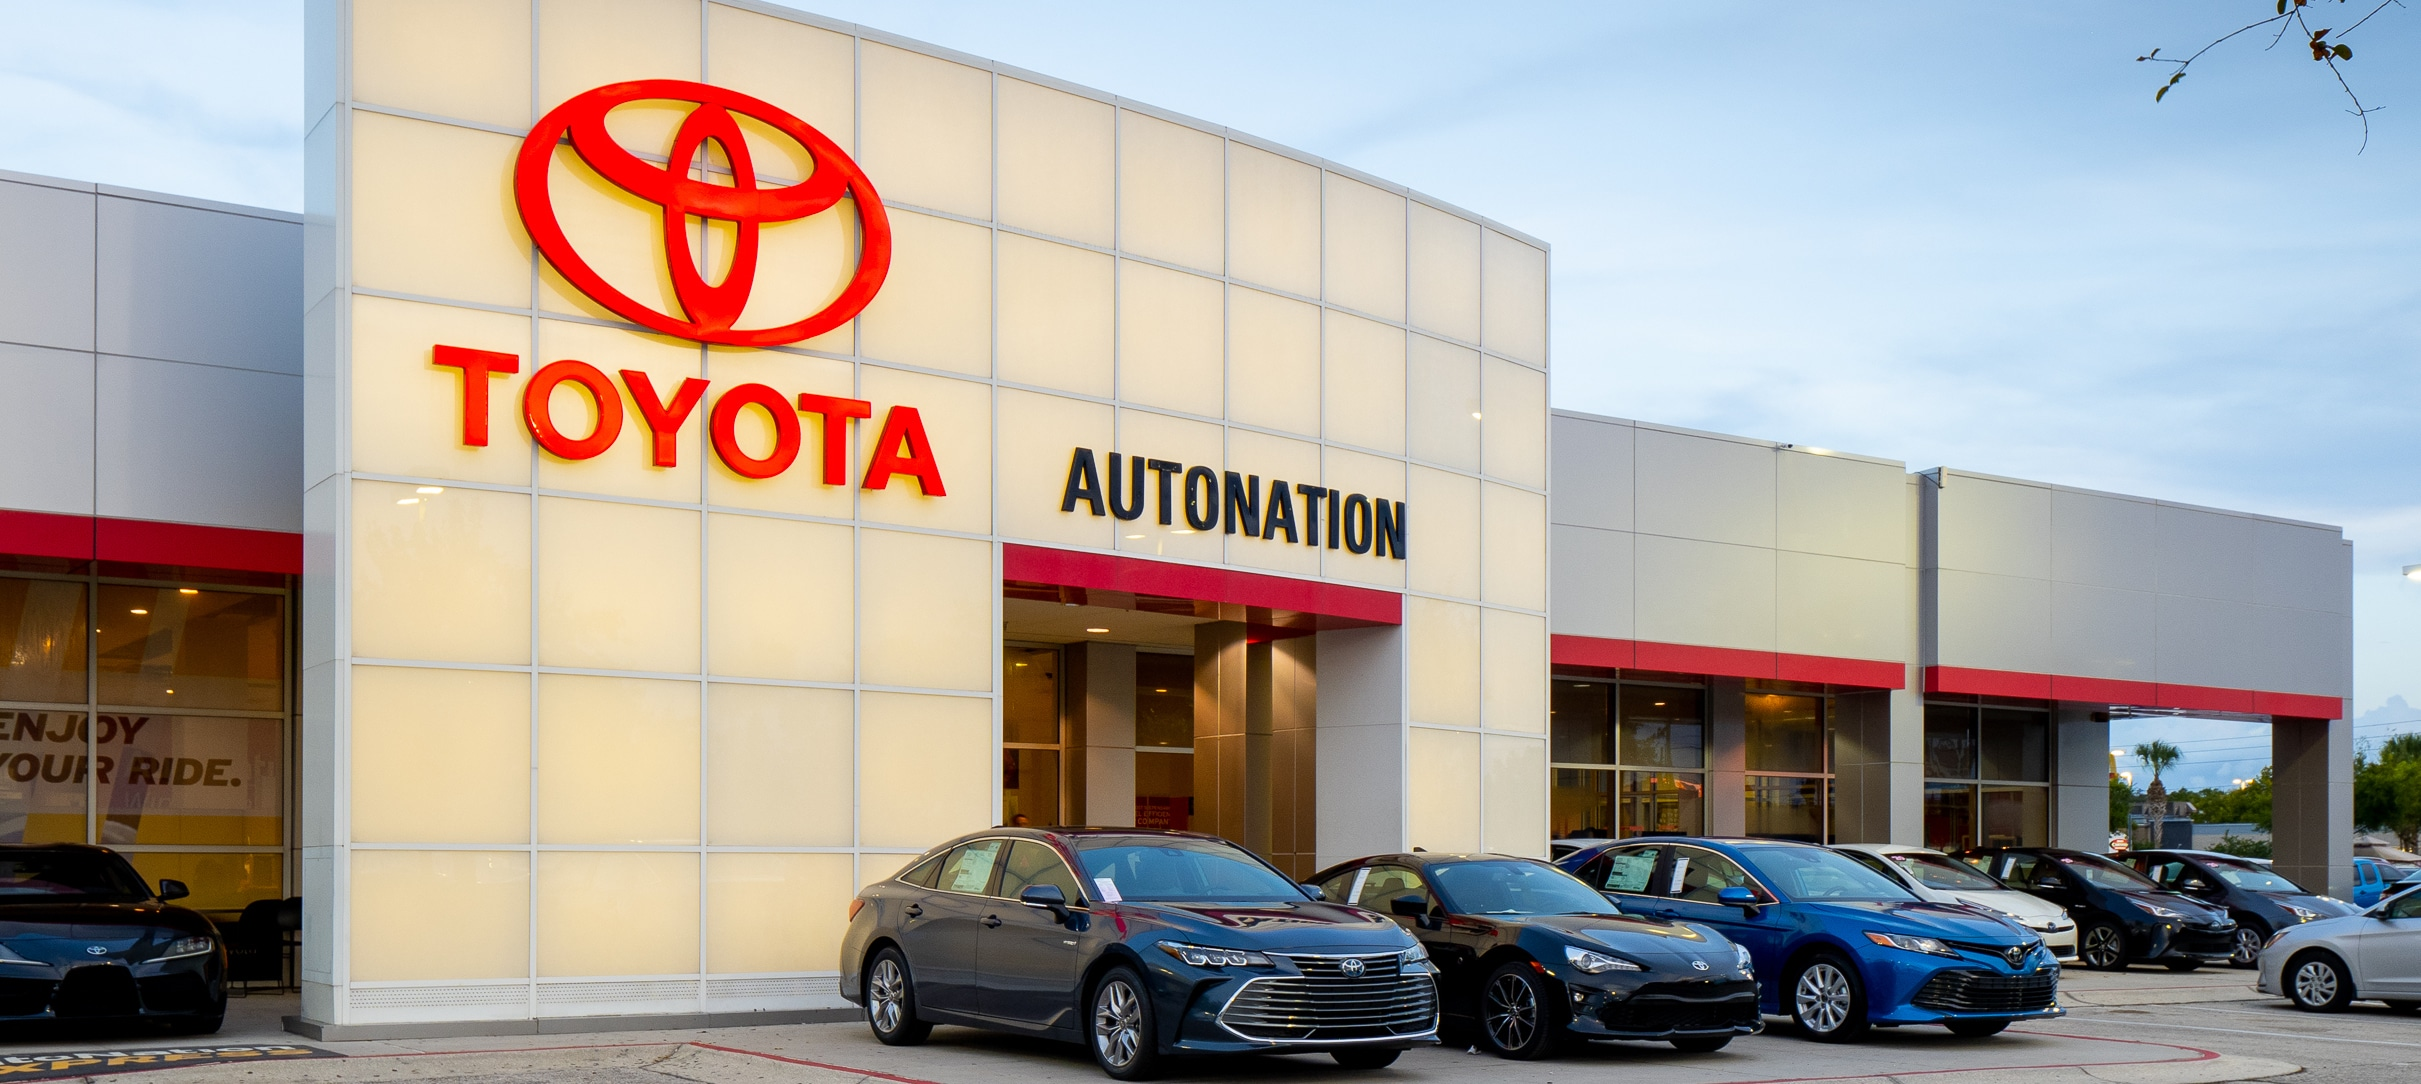 AutoNation Toyota Winter Park at dusk